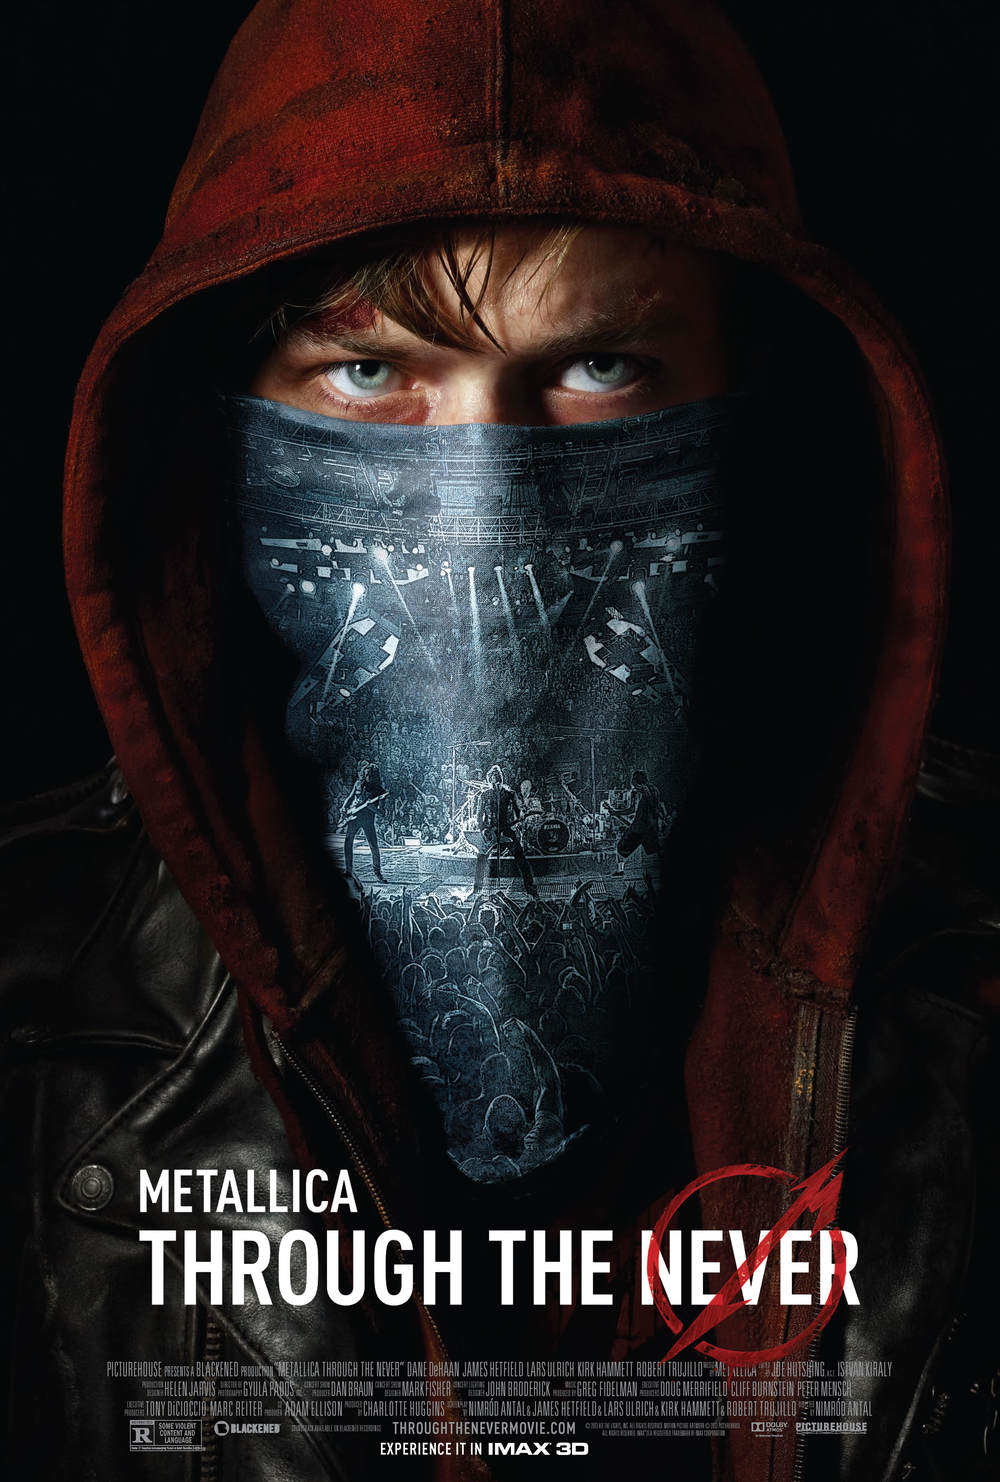 METALLICA THROUGH THE NEVER (2013) Dir. Nimród Antal